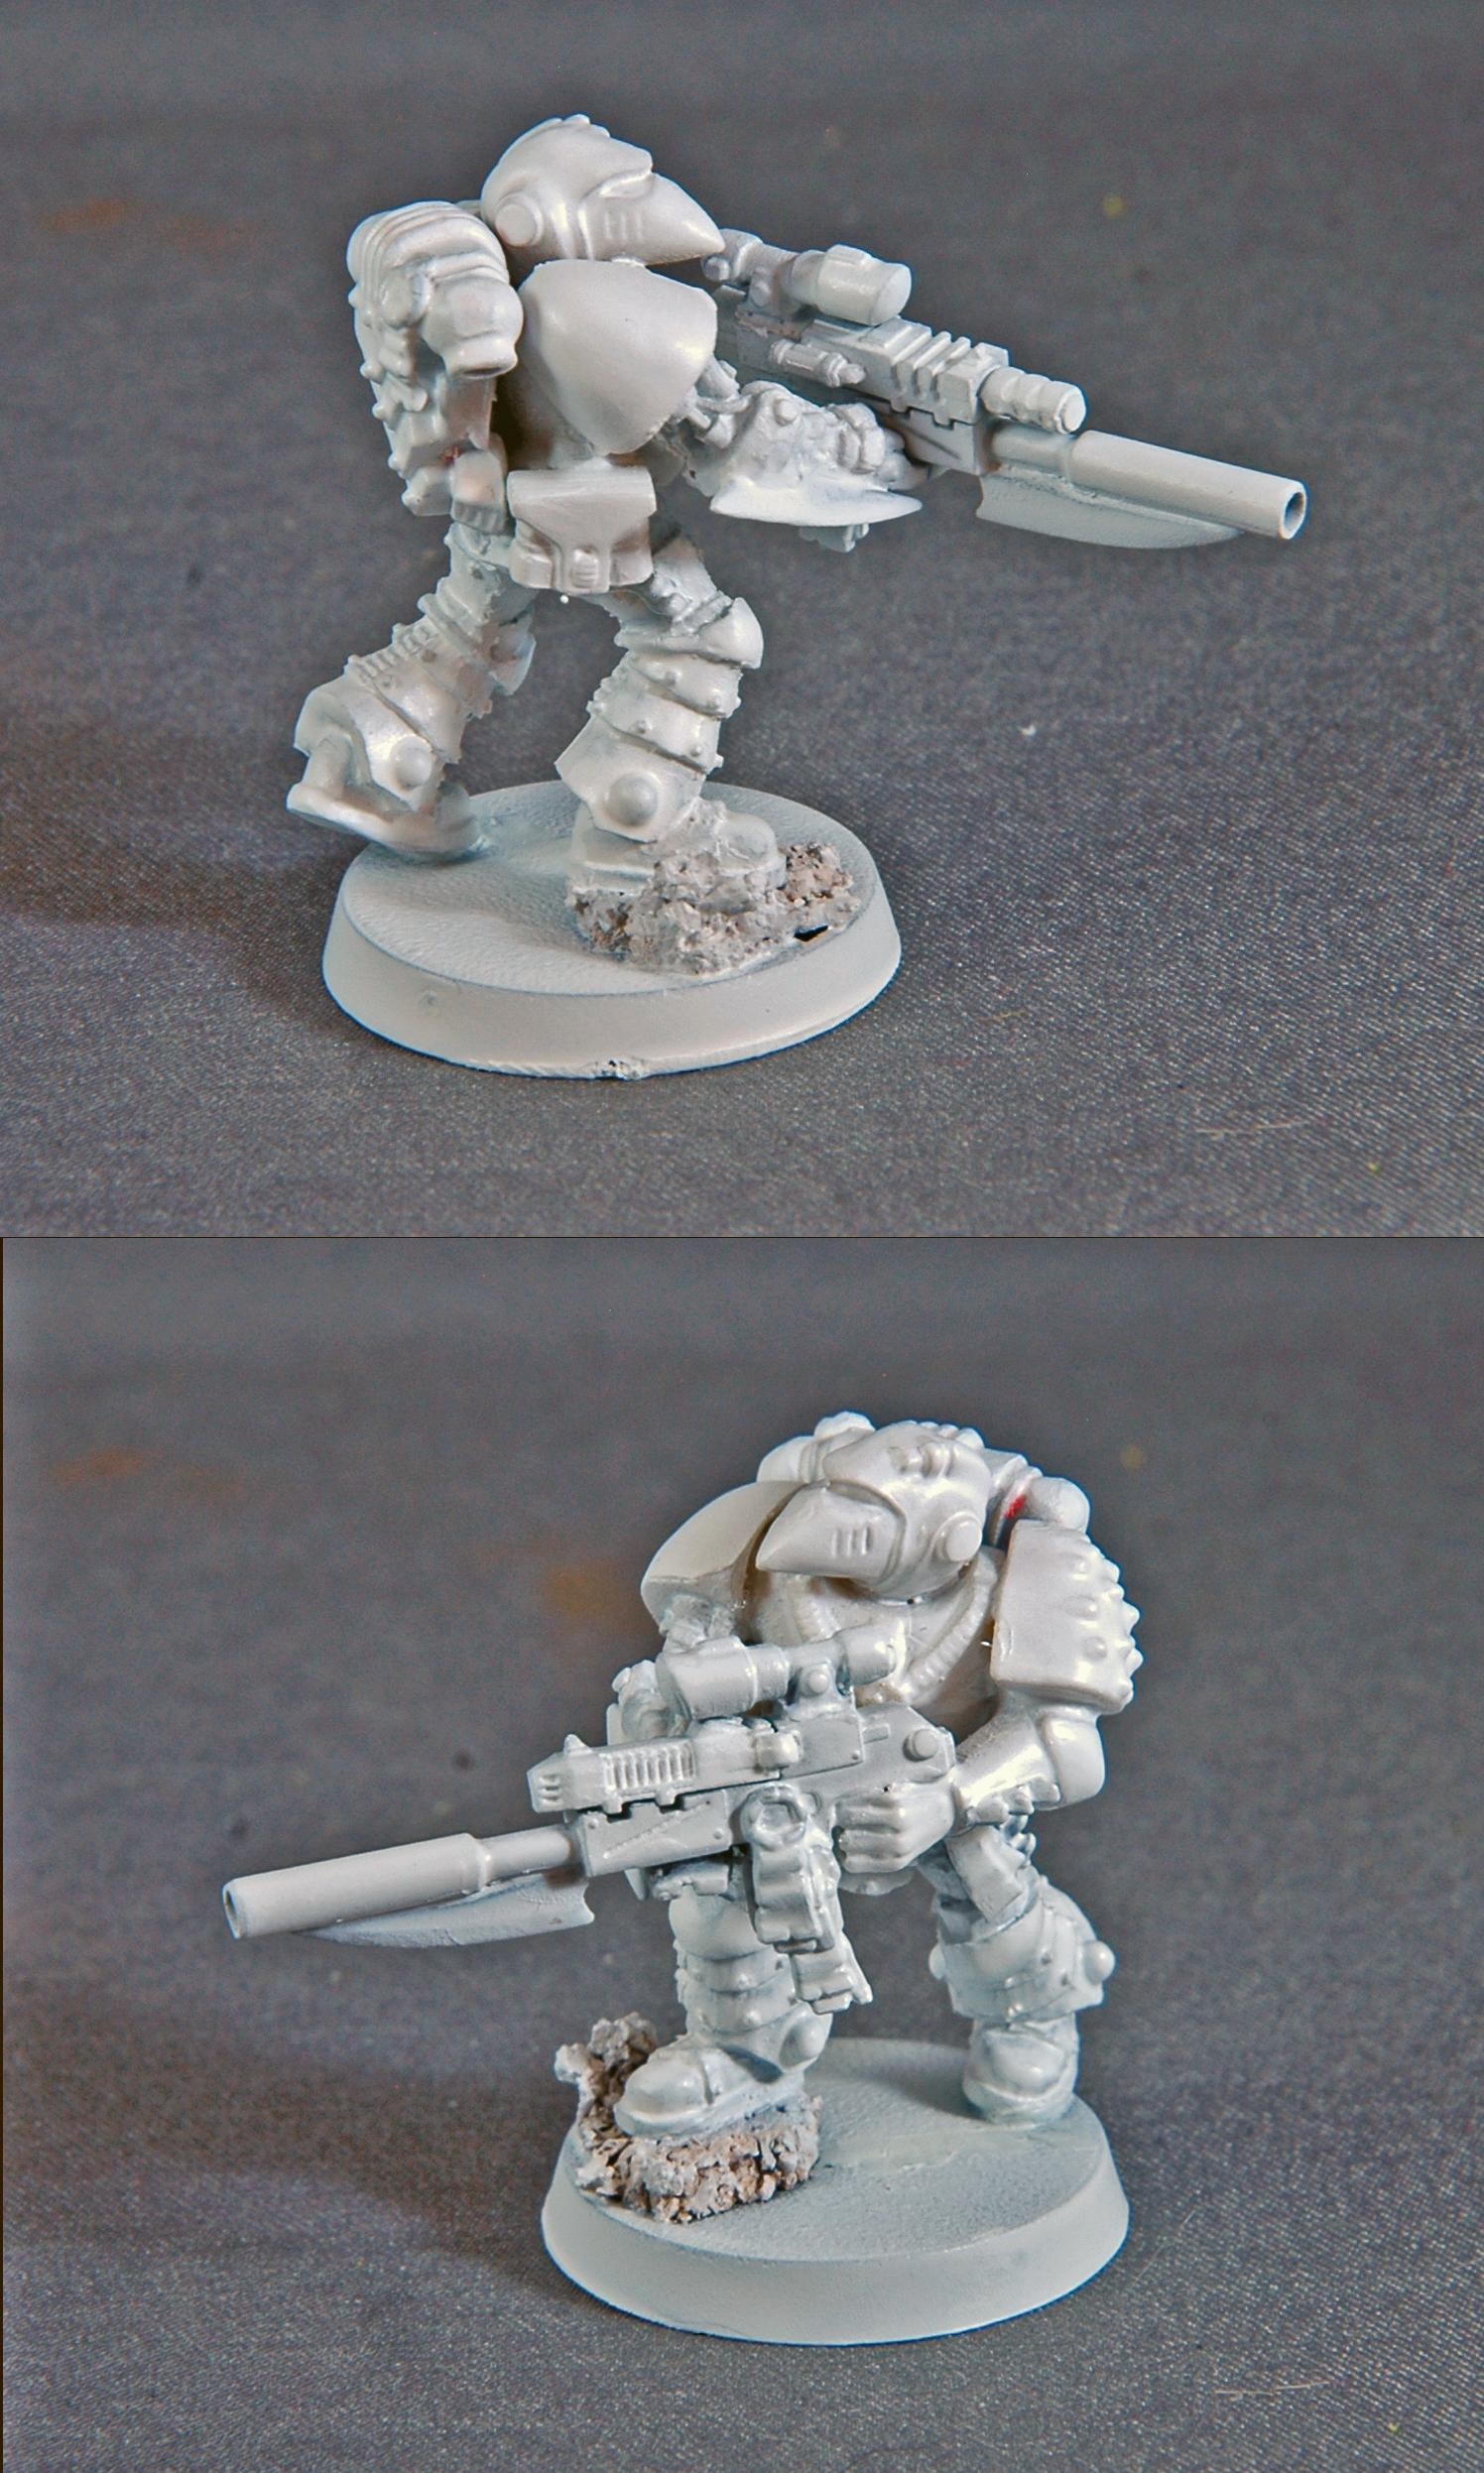 Chapterhouse, Combi-melta, Mantis Warriors, Snipers, Space Marines, Sternguard, Tranquility, Warhammer 40,000